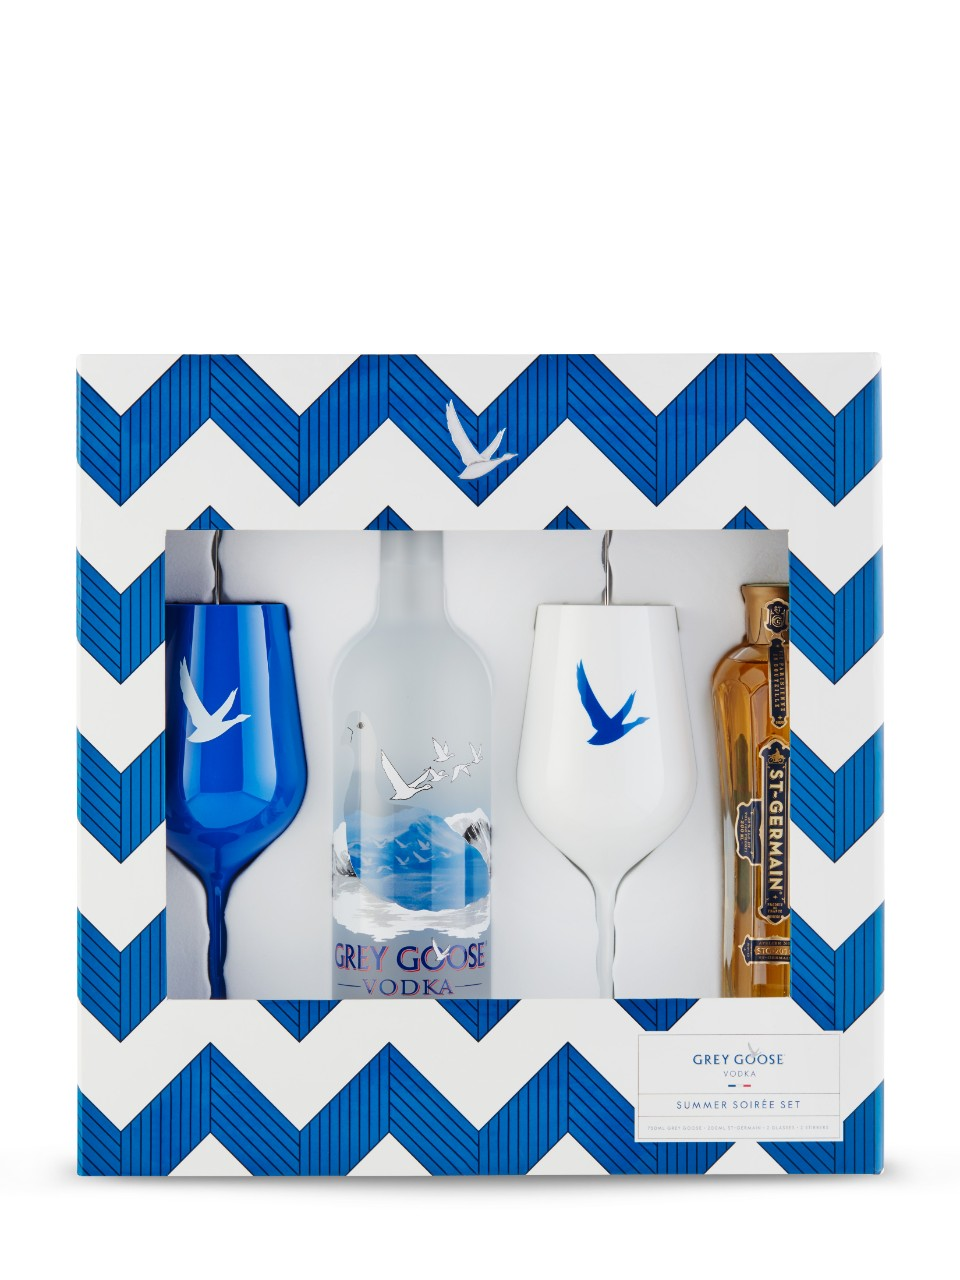 Grey Goose Le Grand Fizz Summer Giftpack